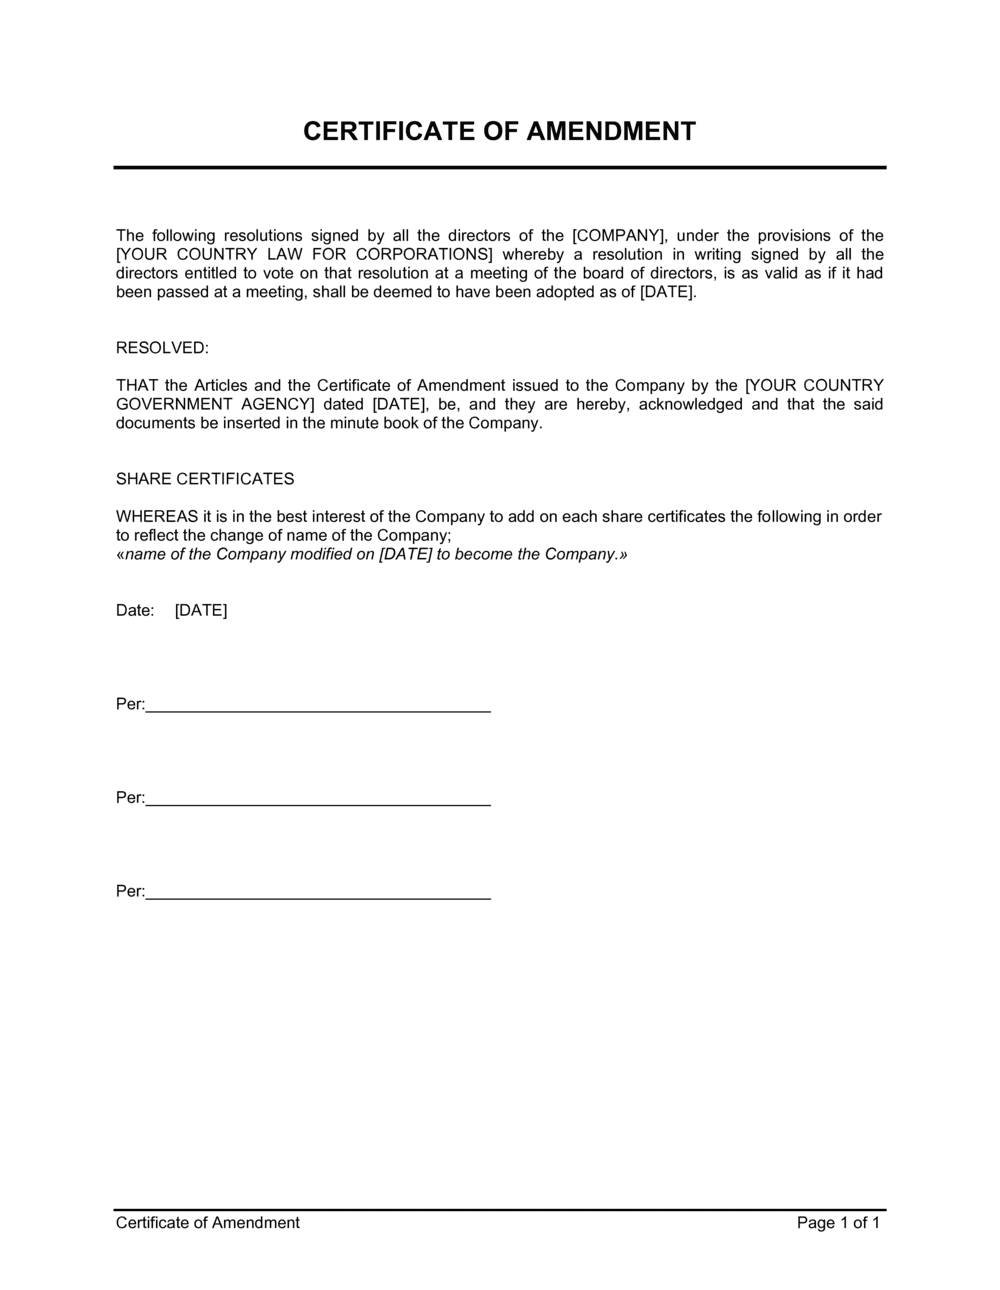 Business-in-a-Box's Certificate of Amendment Template